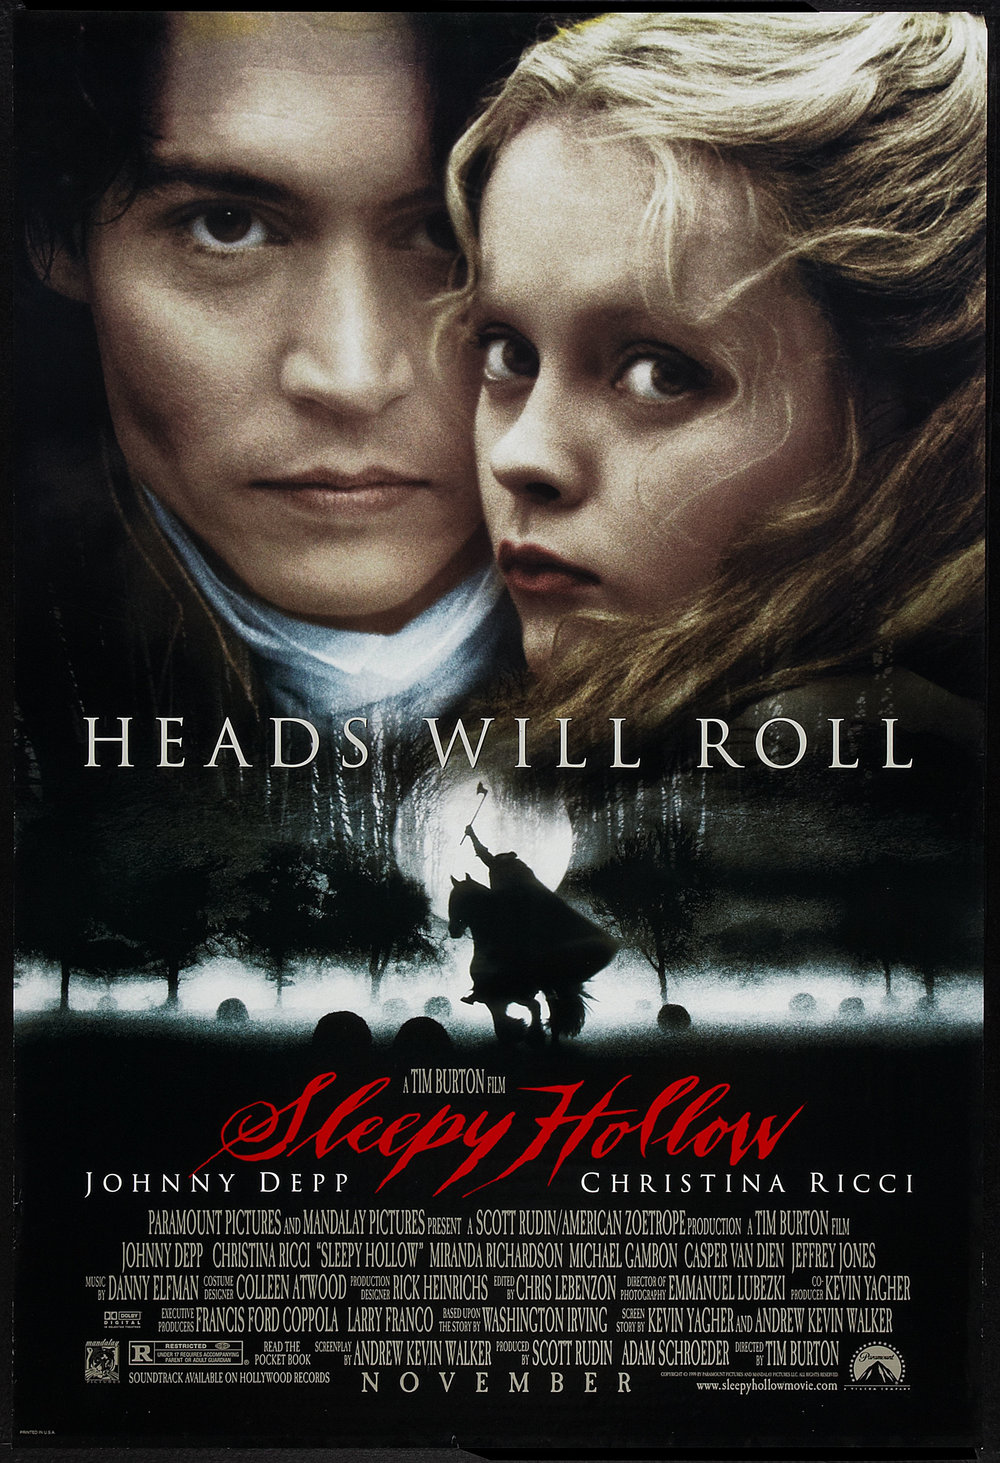 productimage-picture-sleepy-hollow-1-1434.JPG